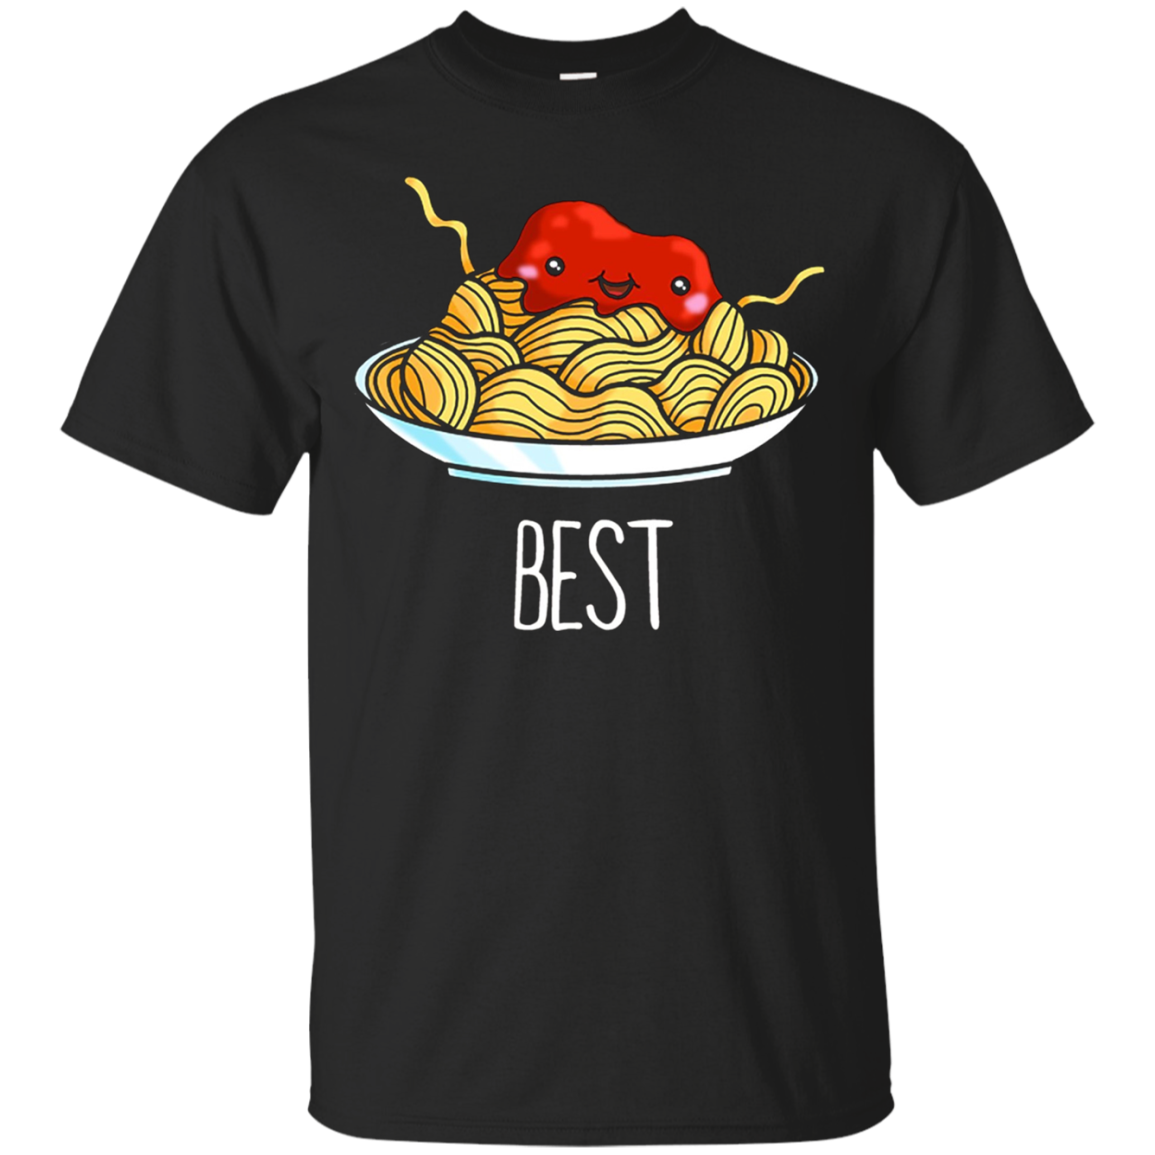 Spaghetti And Meatballs Cute Best Friend Shirts For Women